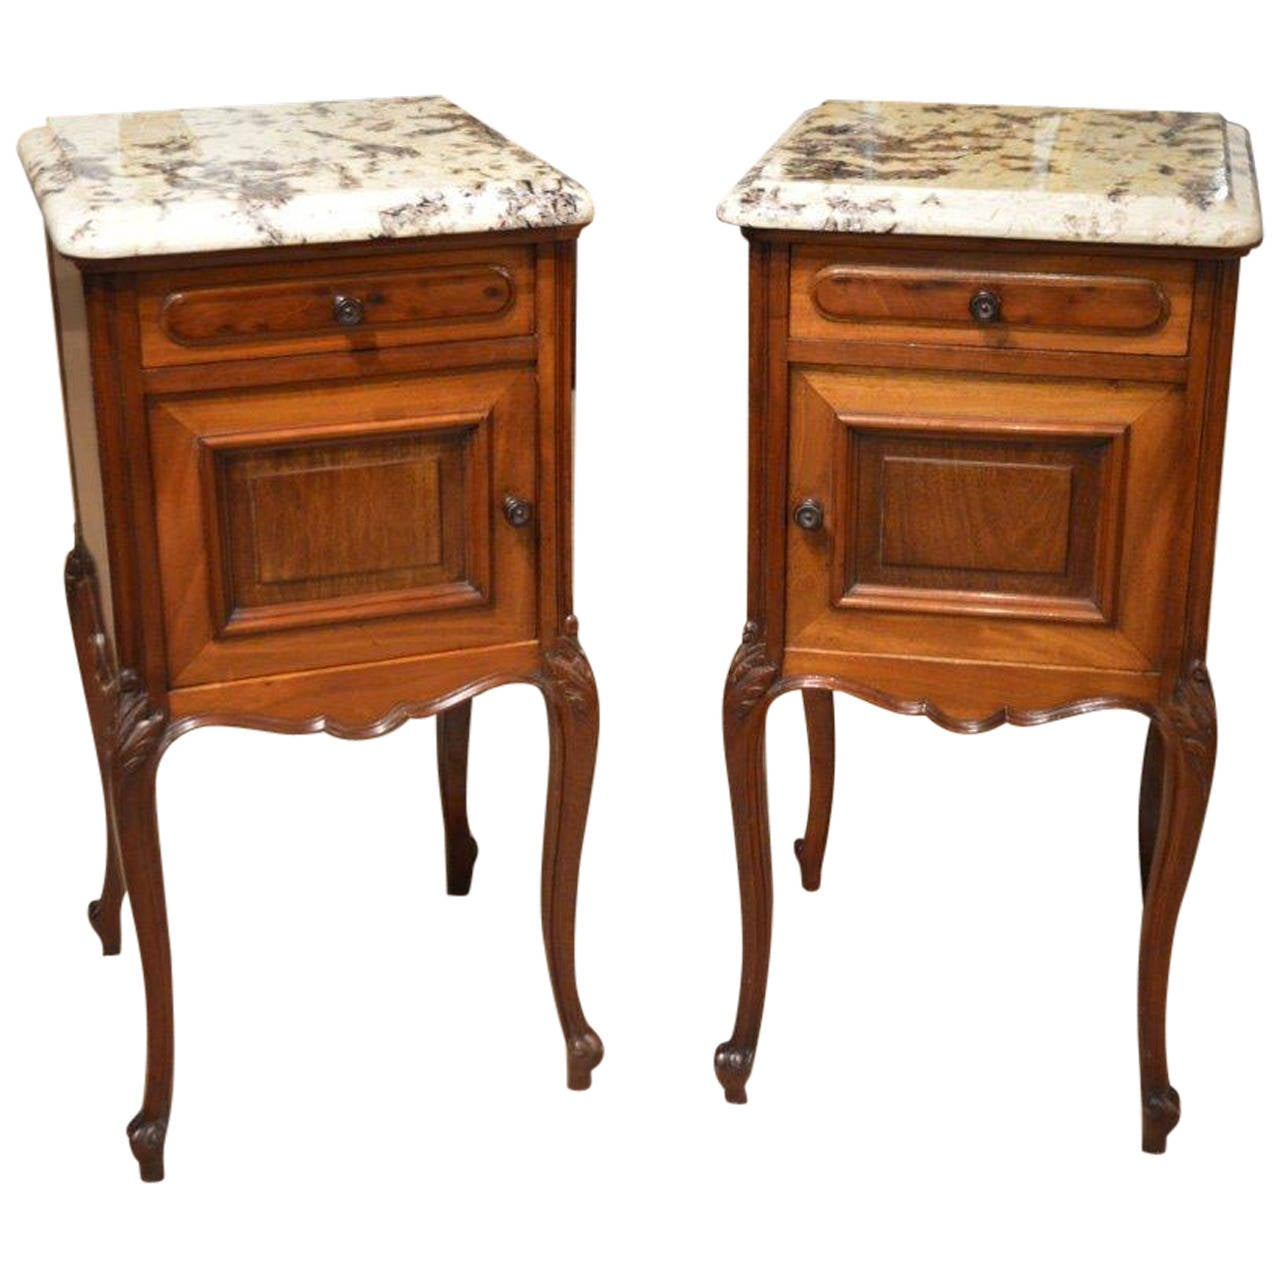 Pair of Mahogany French Antique Bedside Cabinets or Cupboards 1 - Pair Of Mahogany French Antique Bedside Cabinets Or Cupboards At